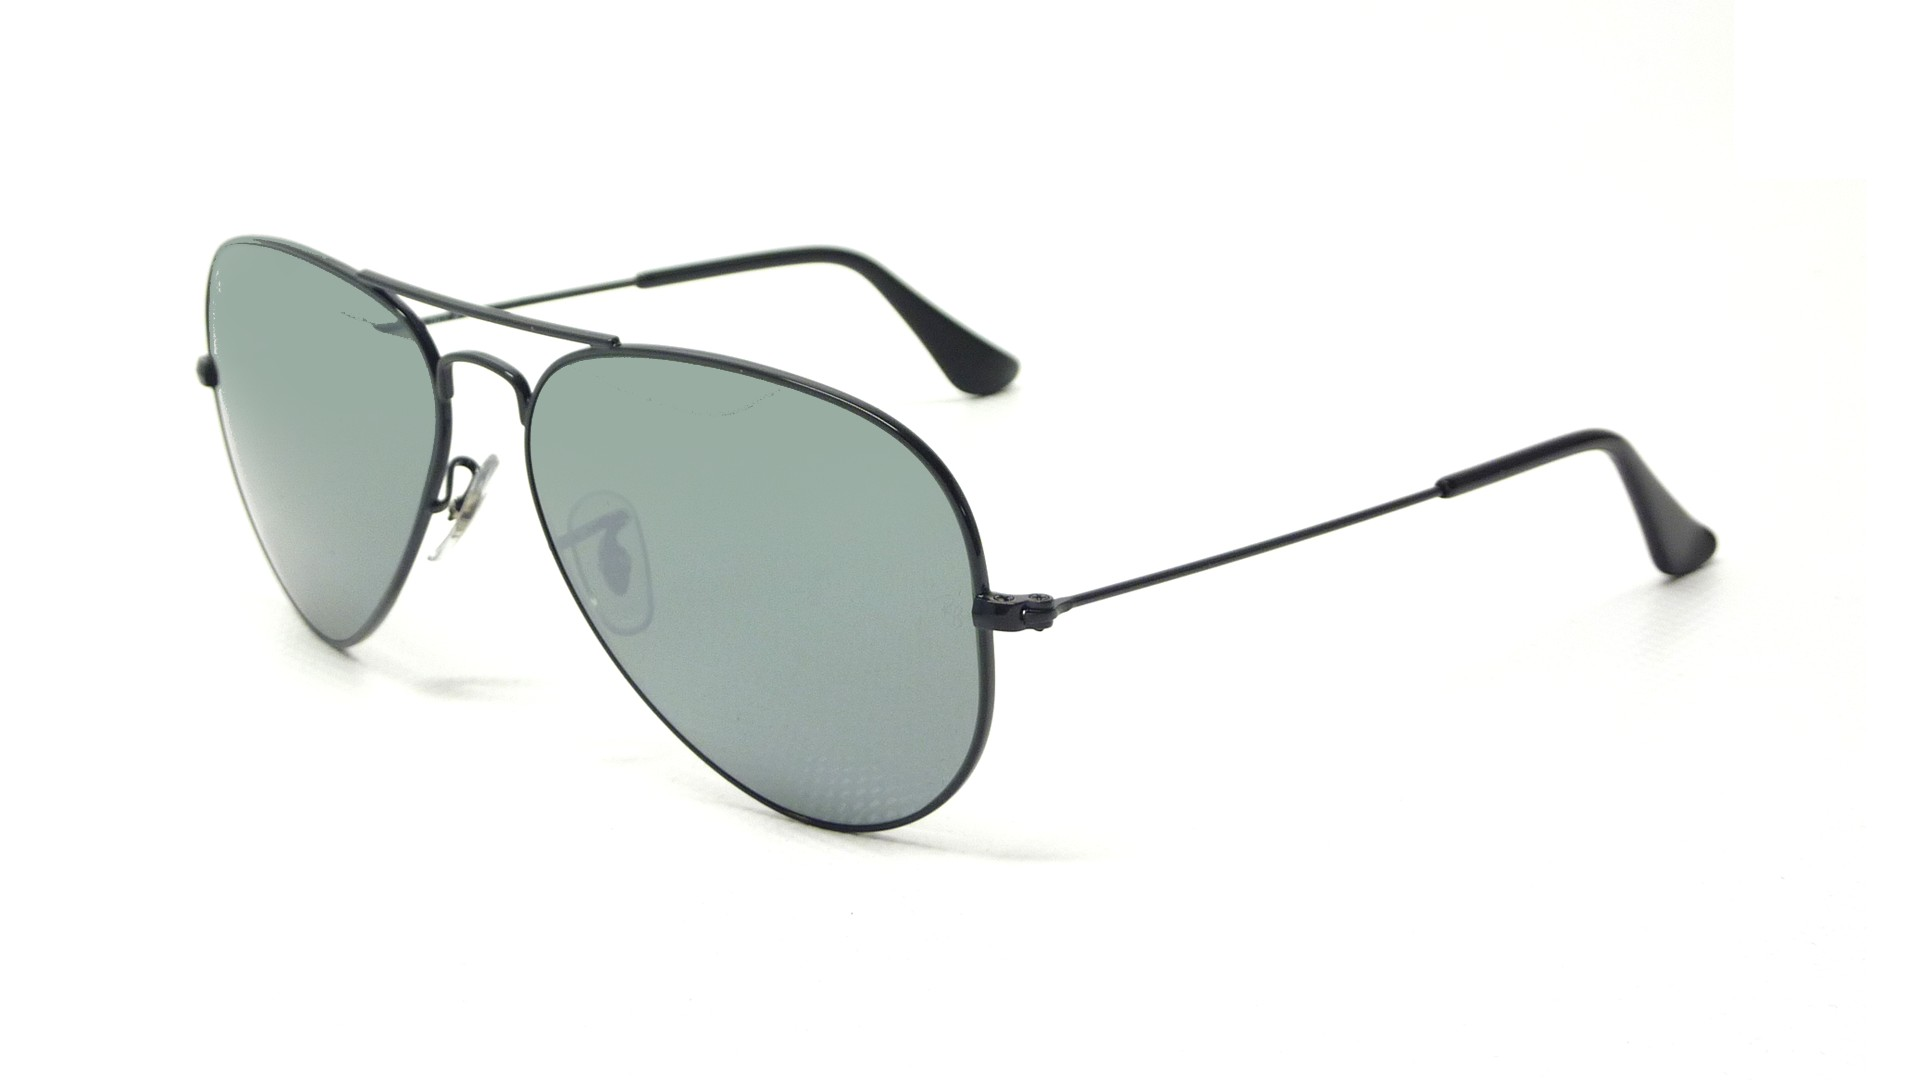 ray ban 3025 glass or plastic